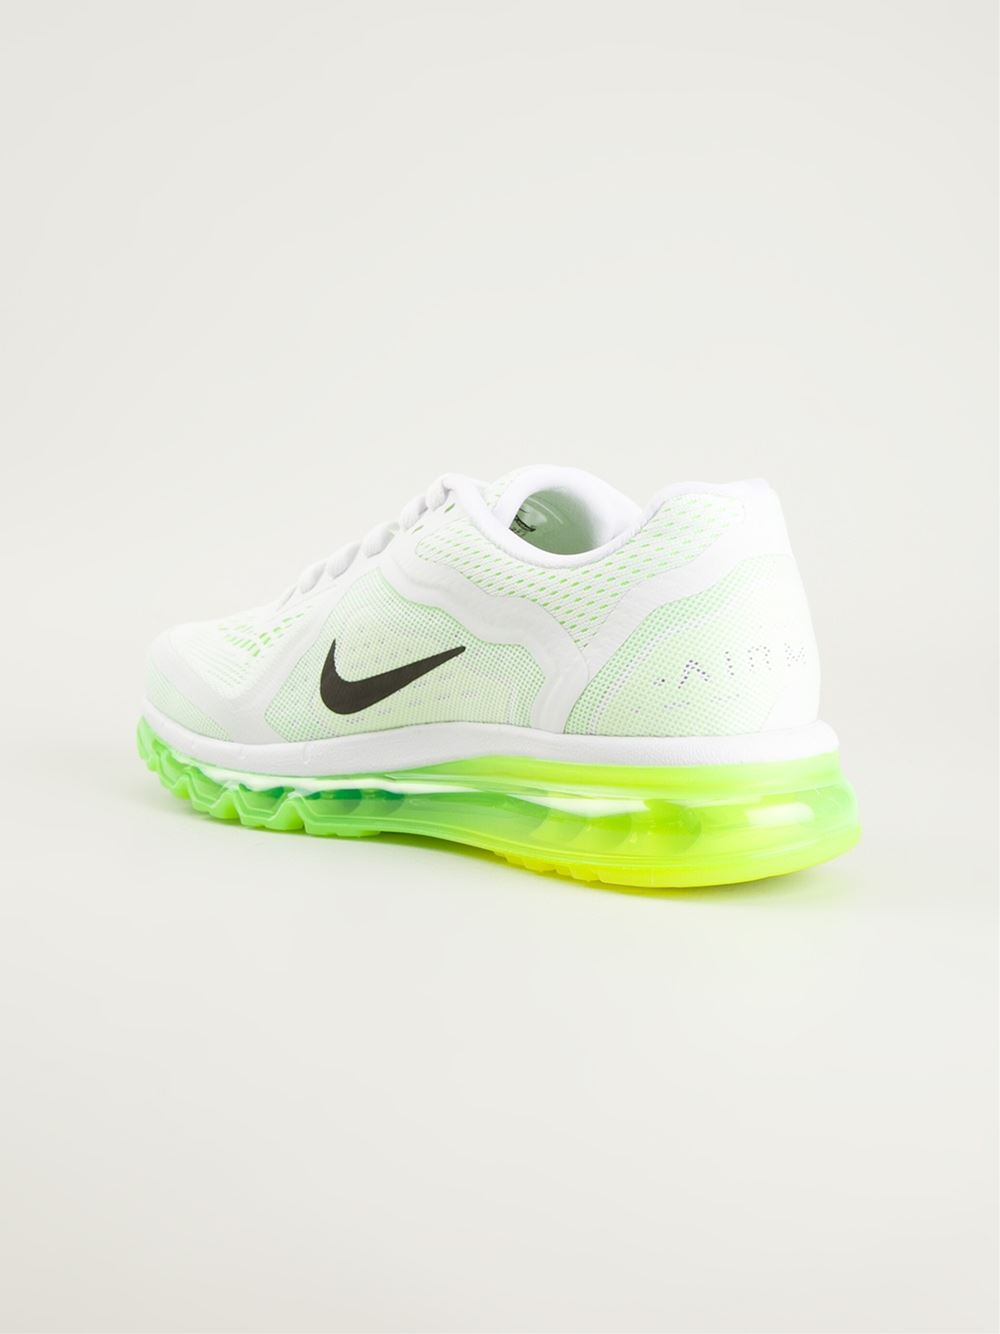 b5a65a9593 Nike 'Air Max 2014' Neon Sole Sneakers in White for Men - Lyst